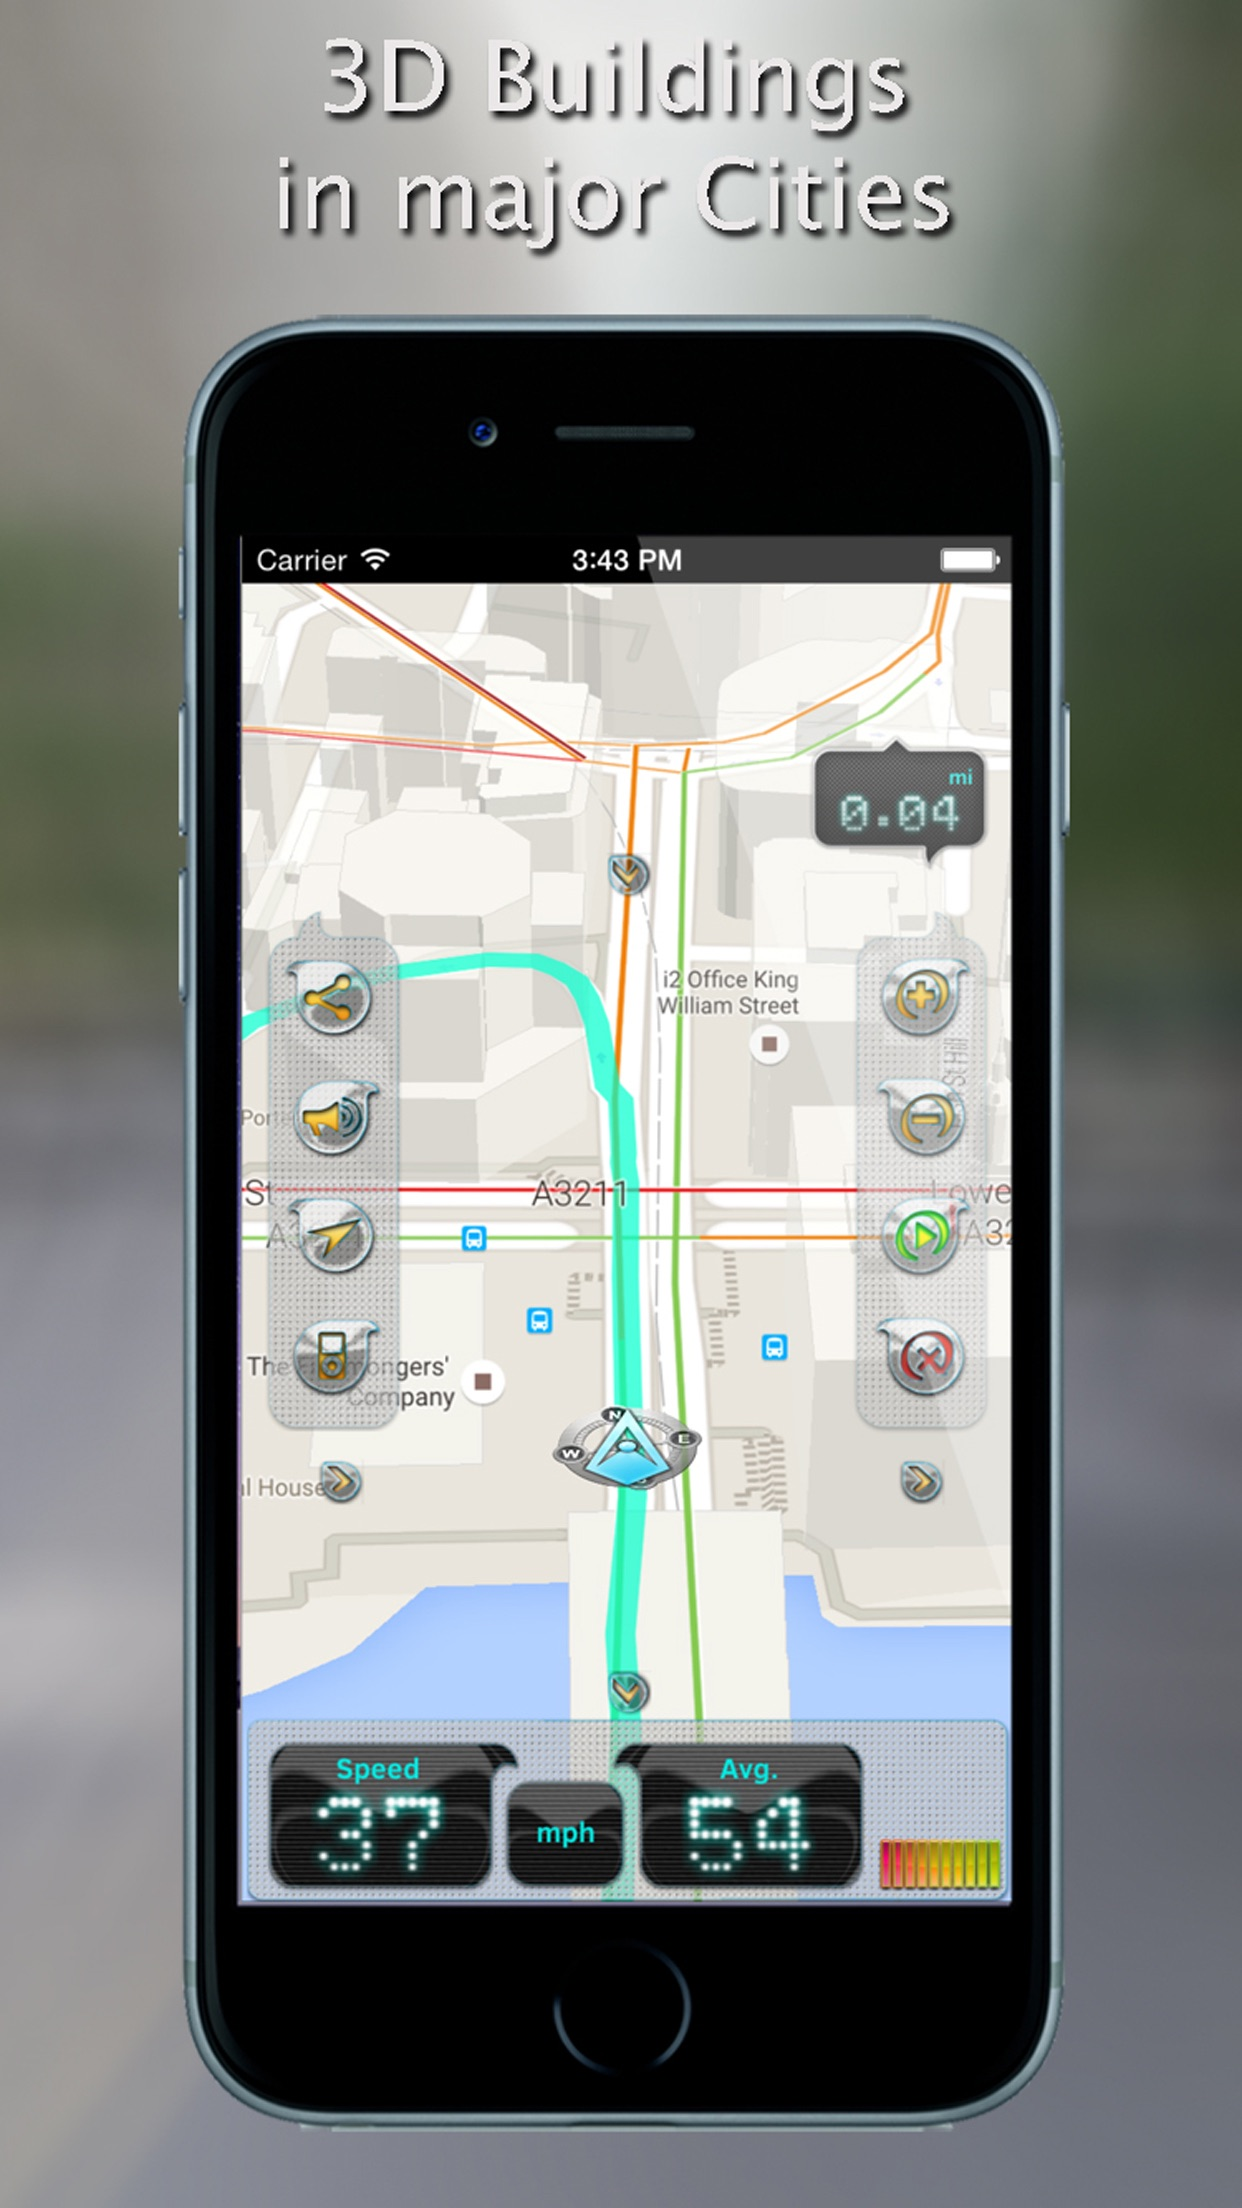 iWay GPS Navigation - Turn by turn voice guidance Screenshot